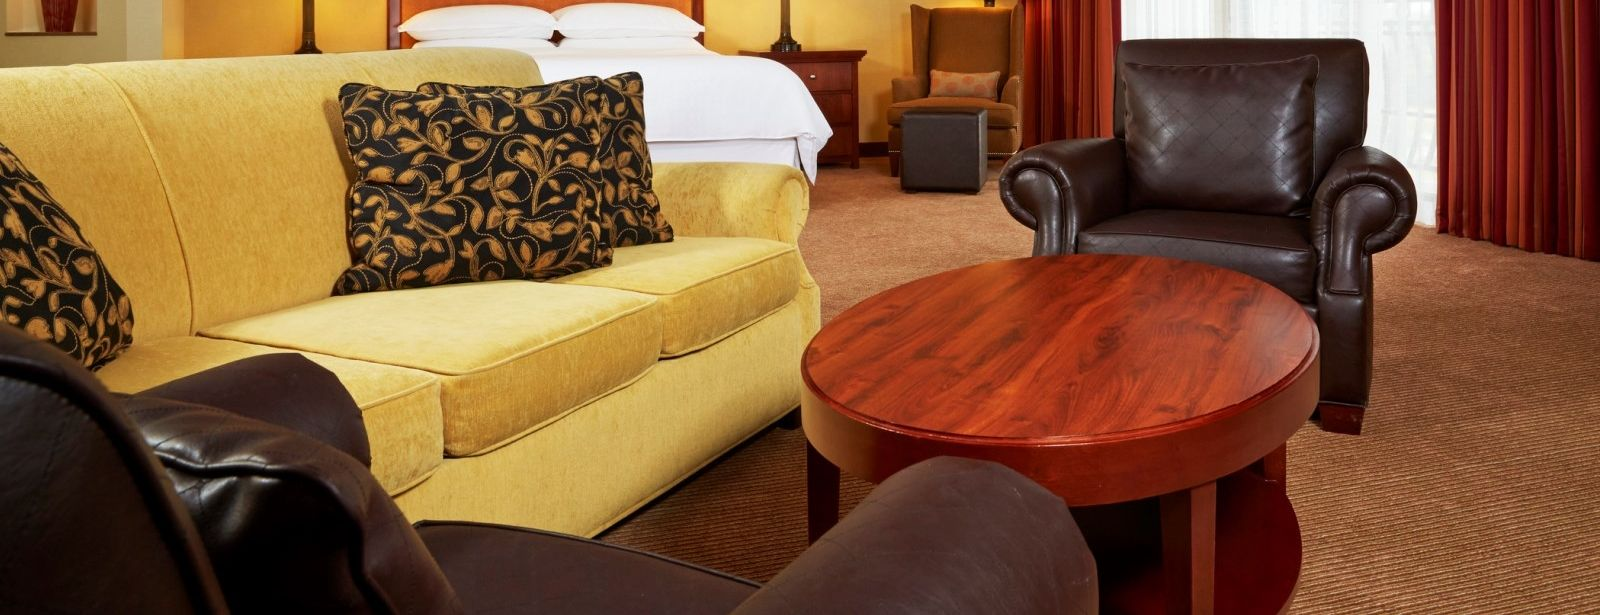 Pacific Studio Suites - Sheraton Carlsbad Resort & Spa